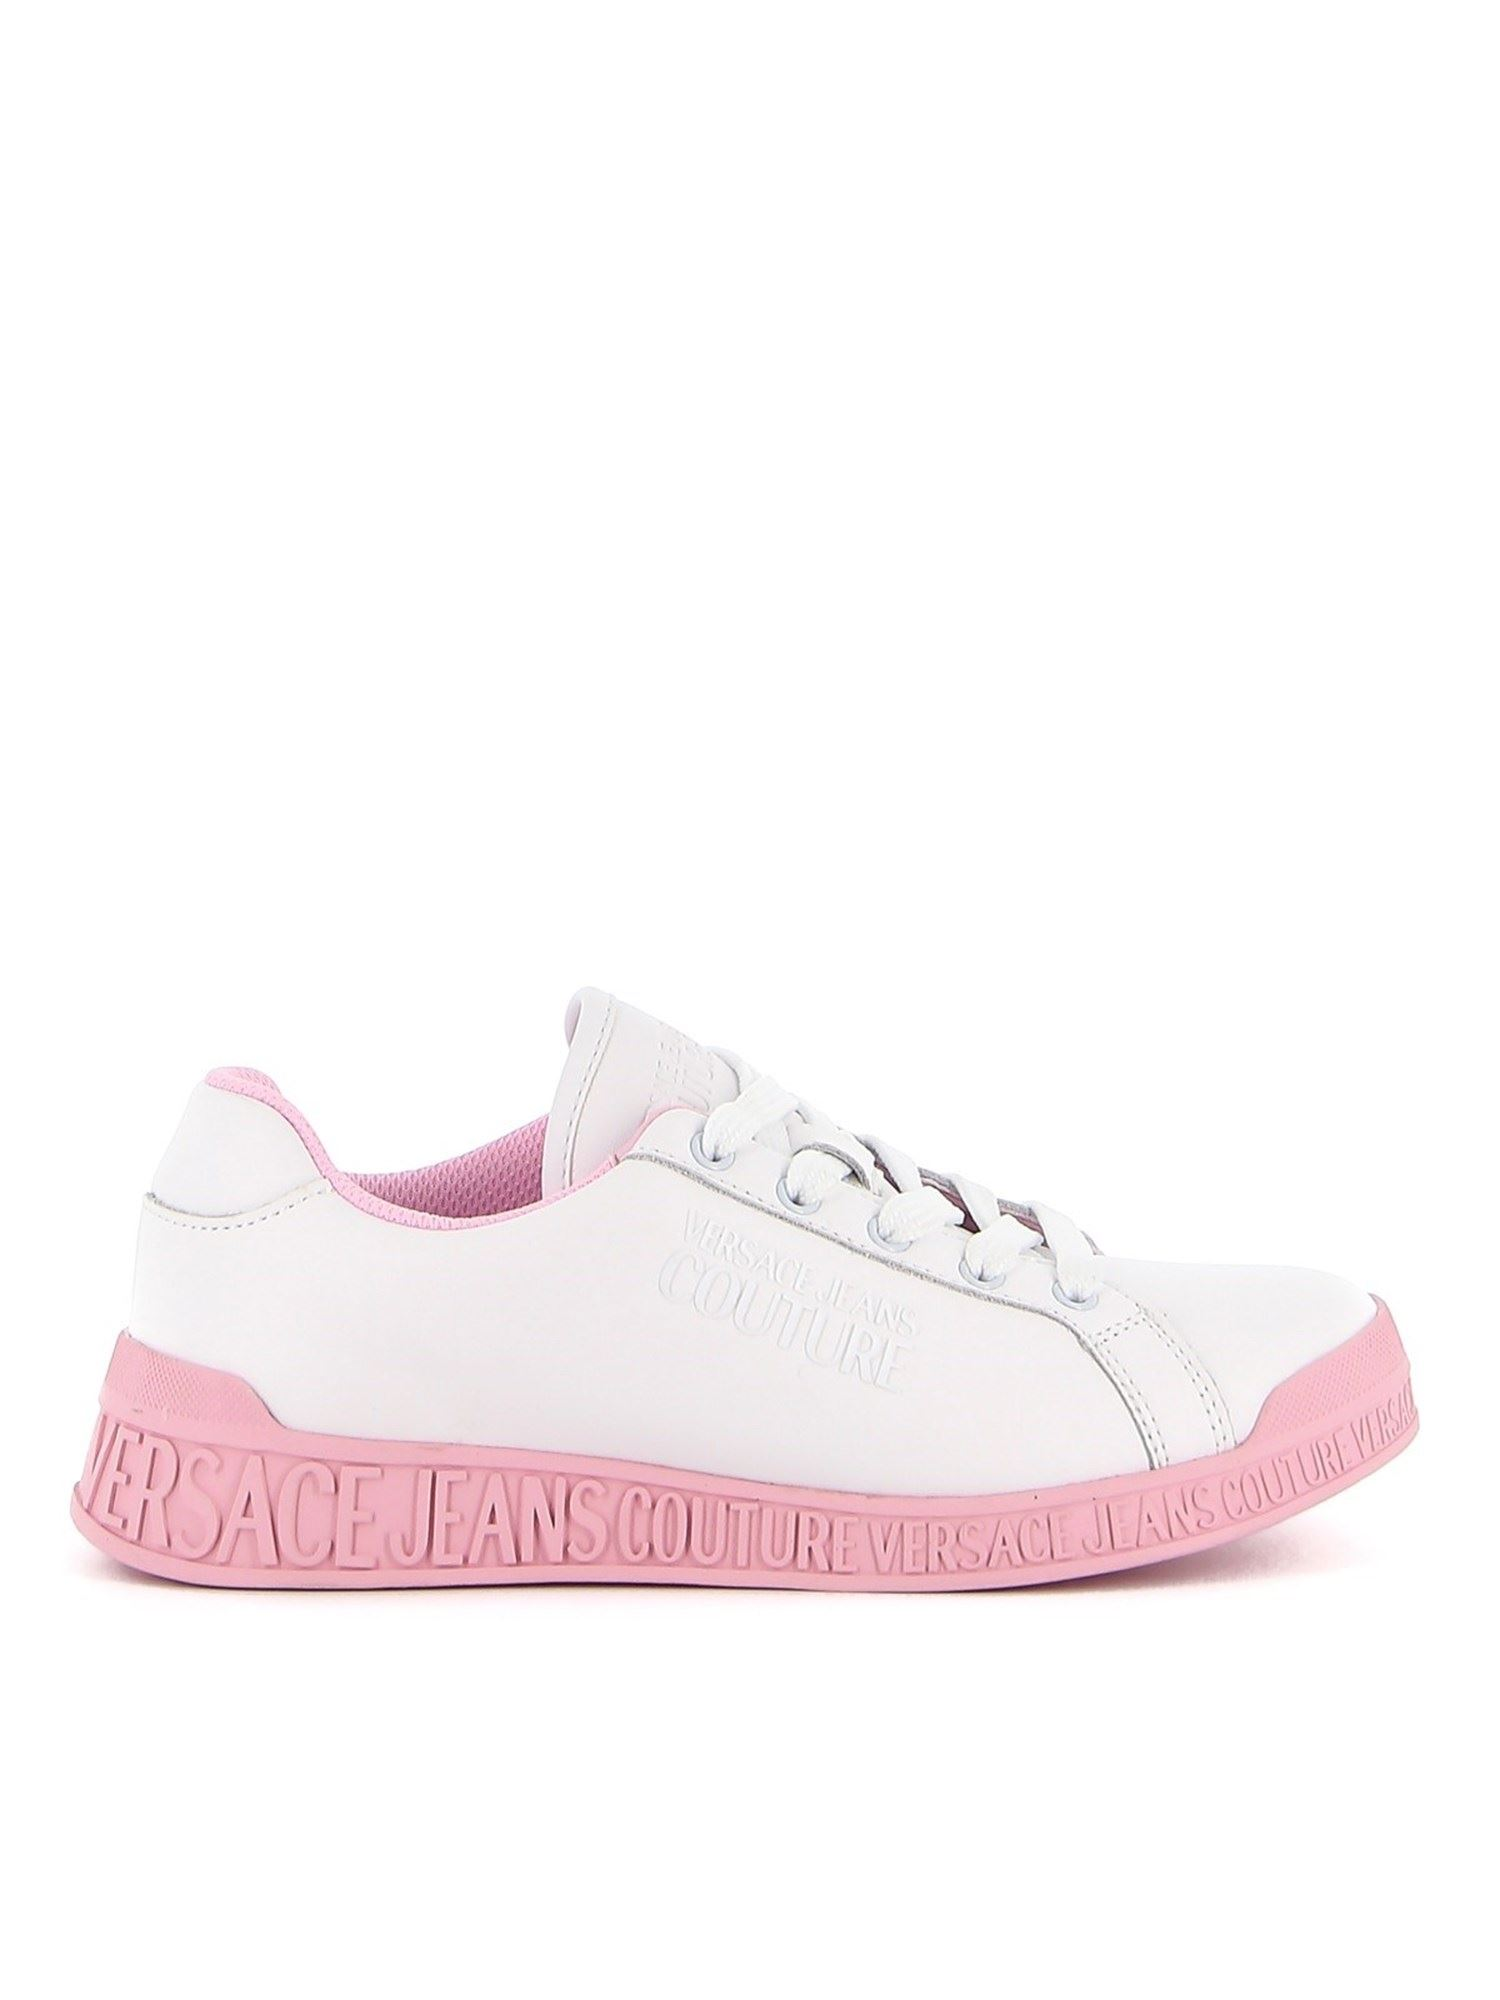 Versace Jeans Couture Low tops ENGRAVED LOGO LEATHER SNEAKERS IN WHITE AND PINK